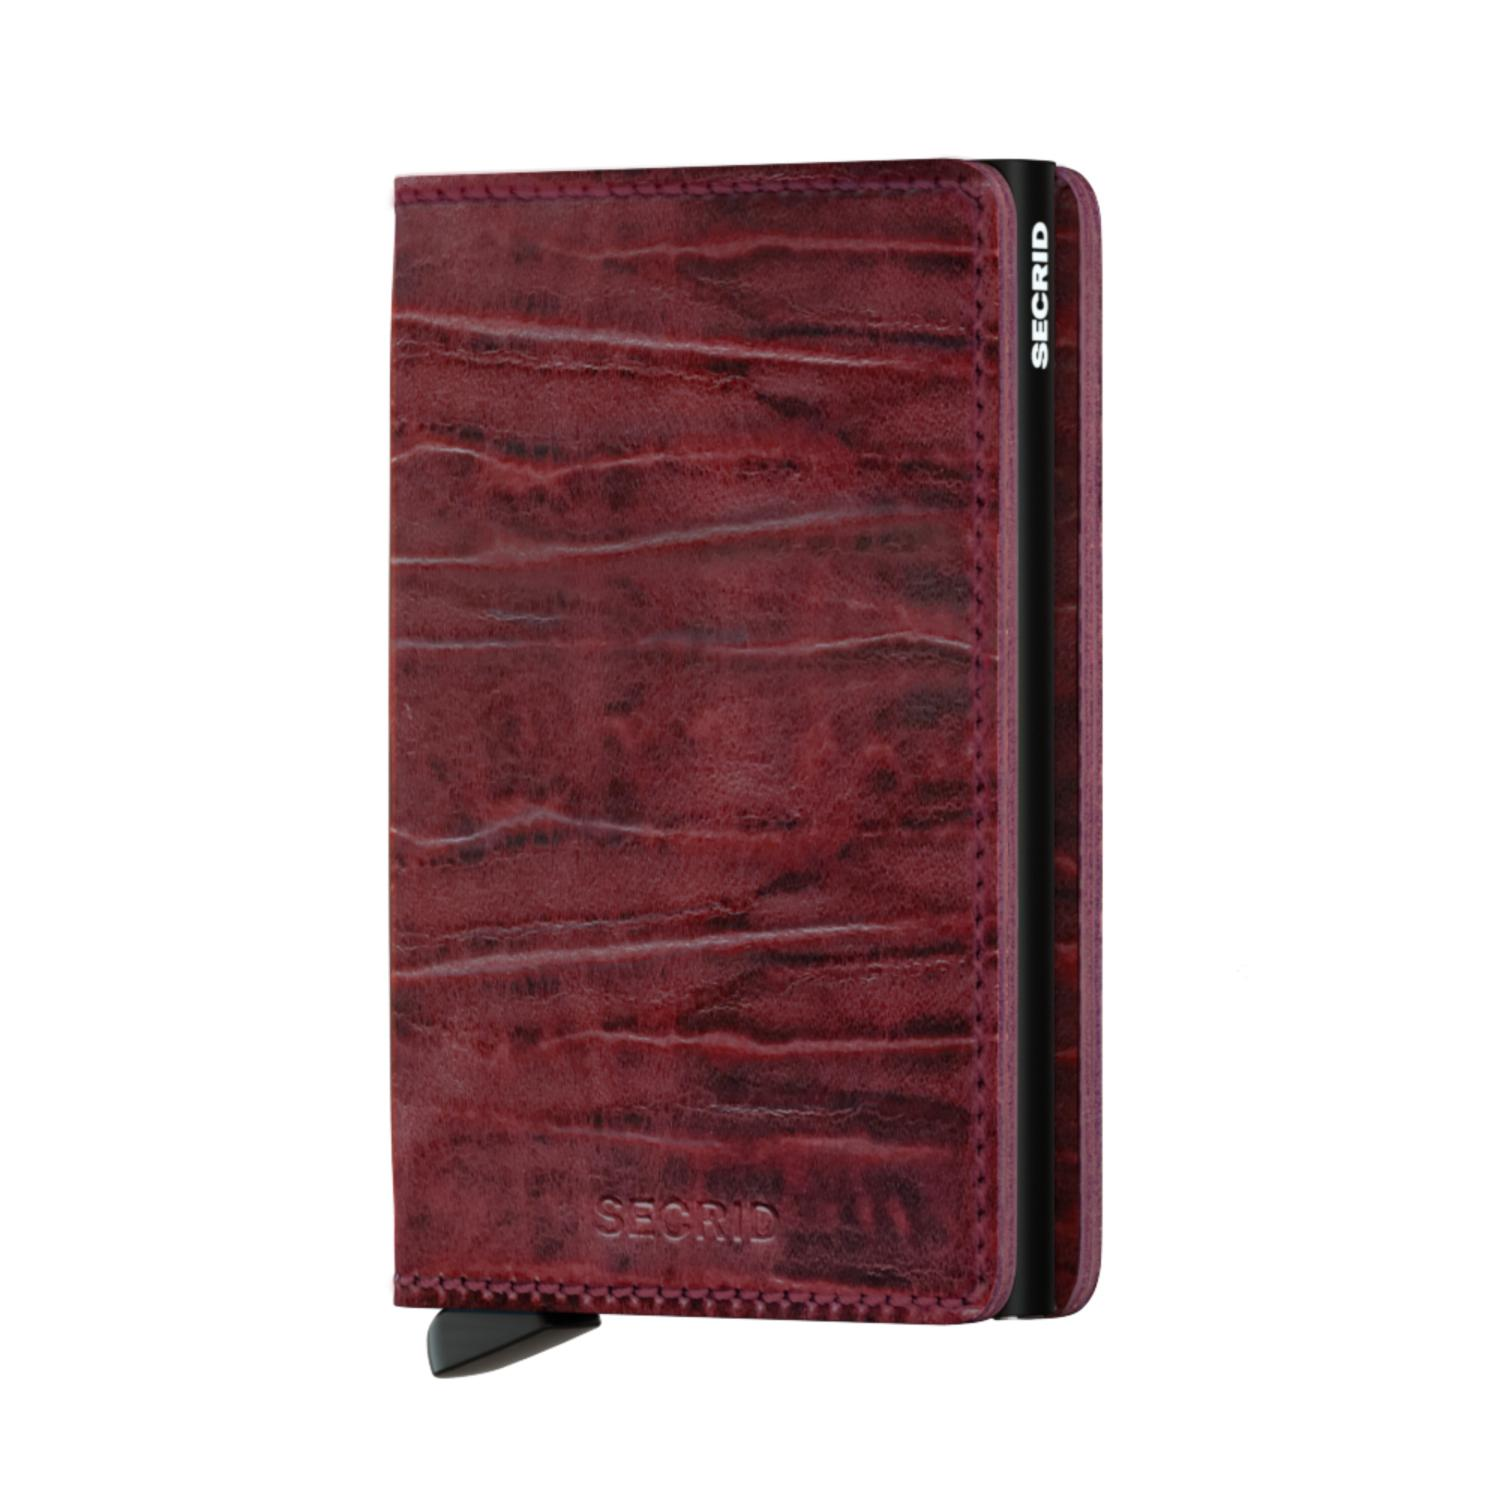 SECRID SLIMWALLET S-DUTCH MARTIN/BORDEAUX BORDEAUX